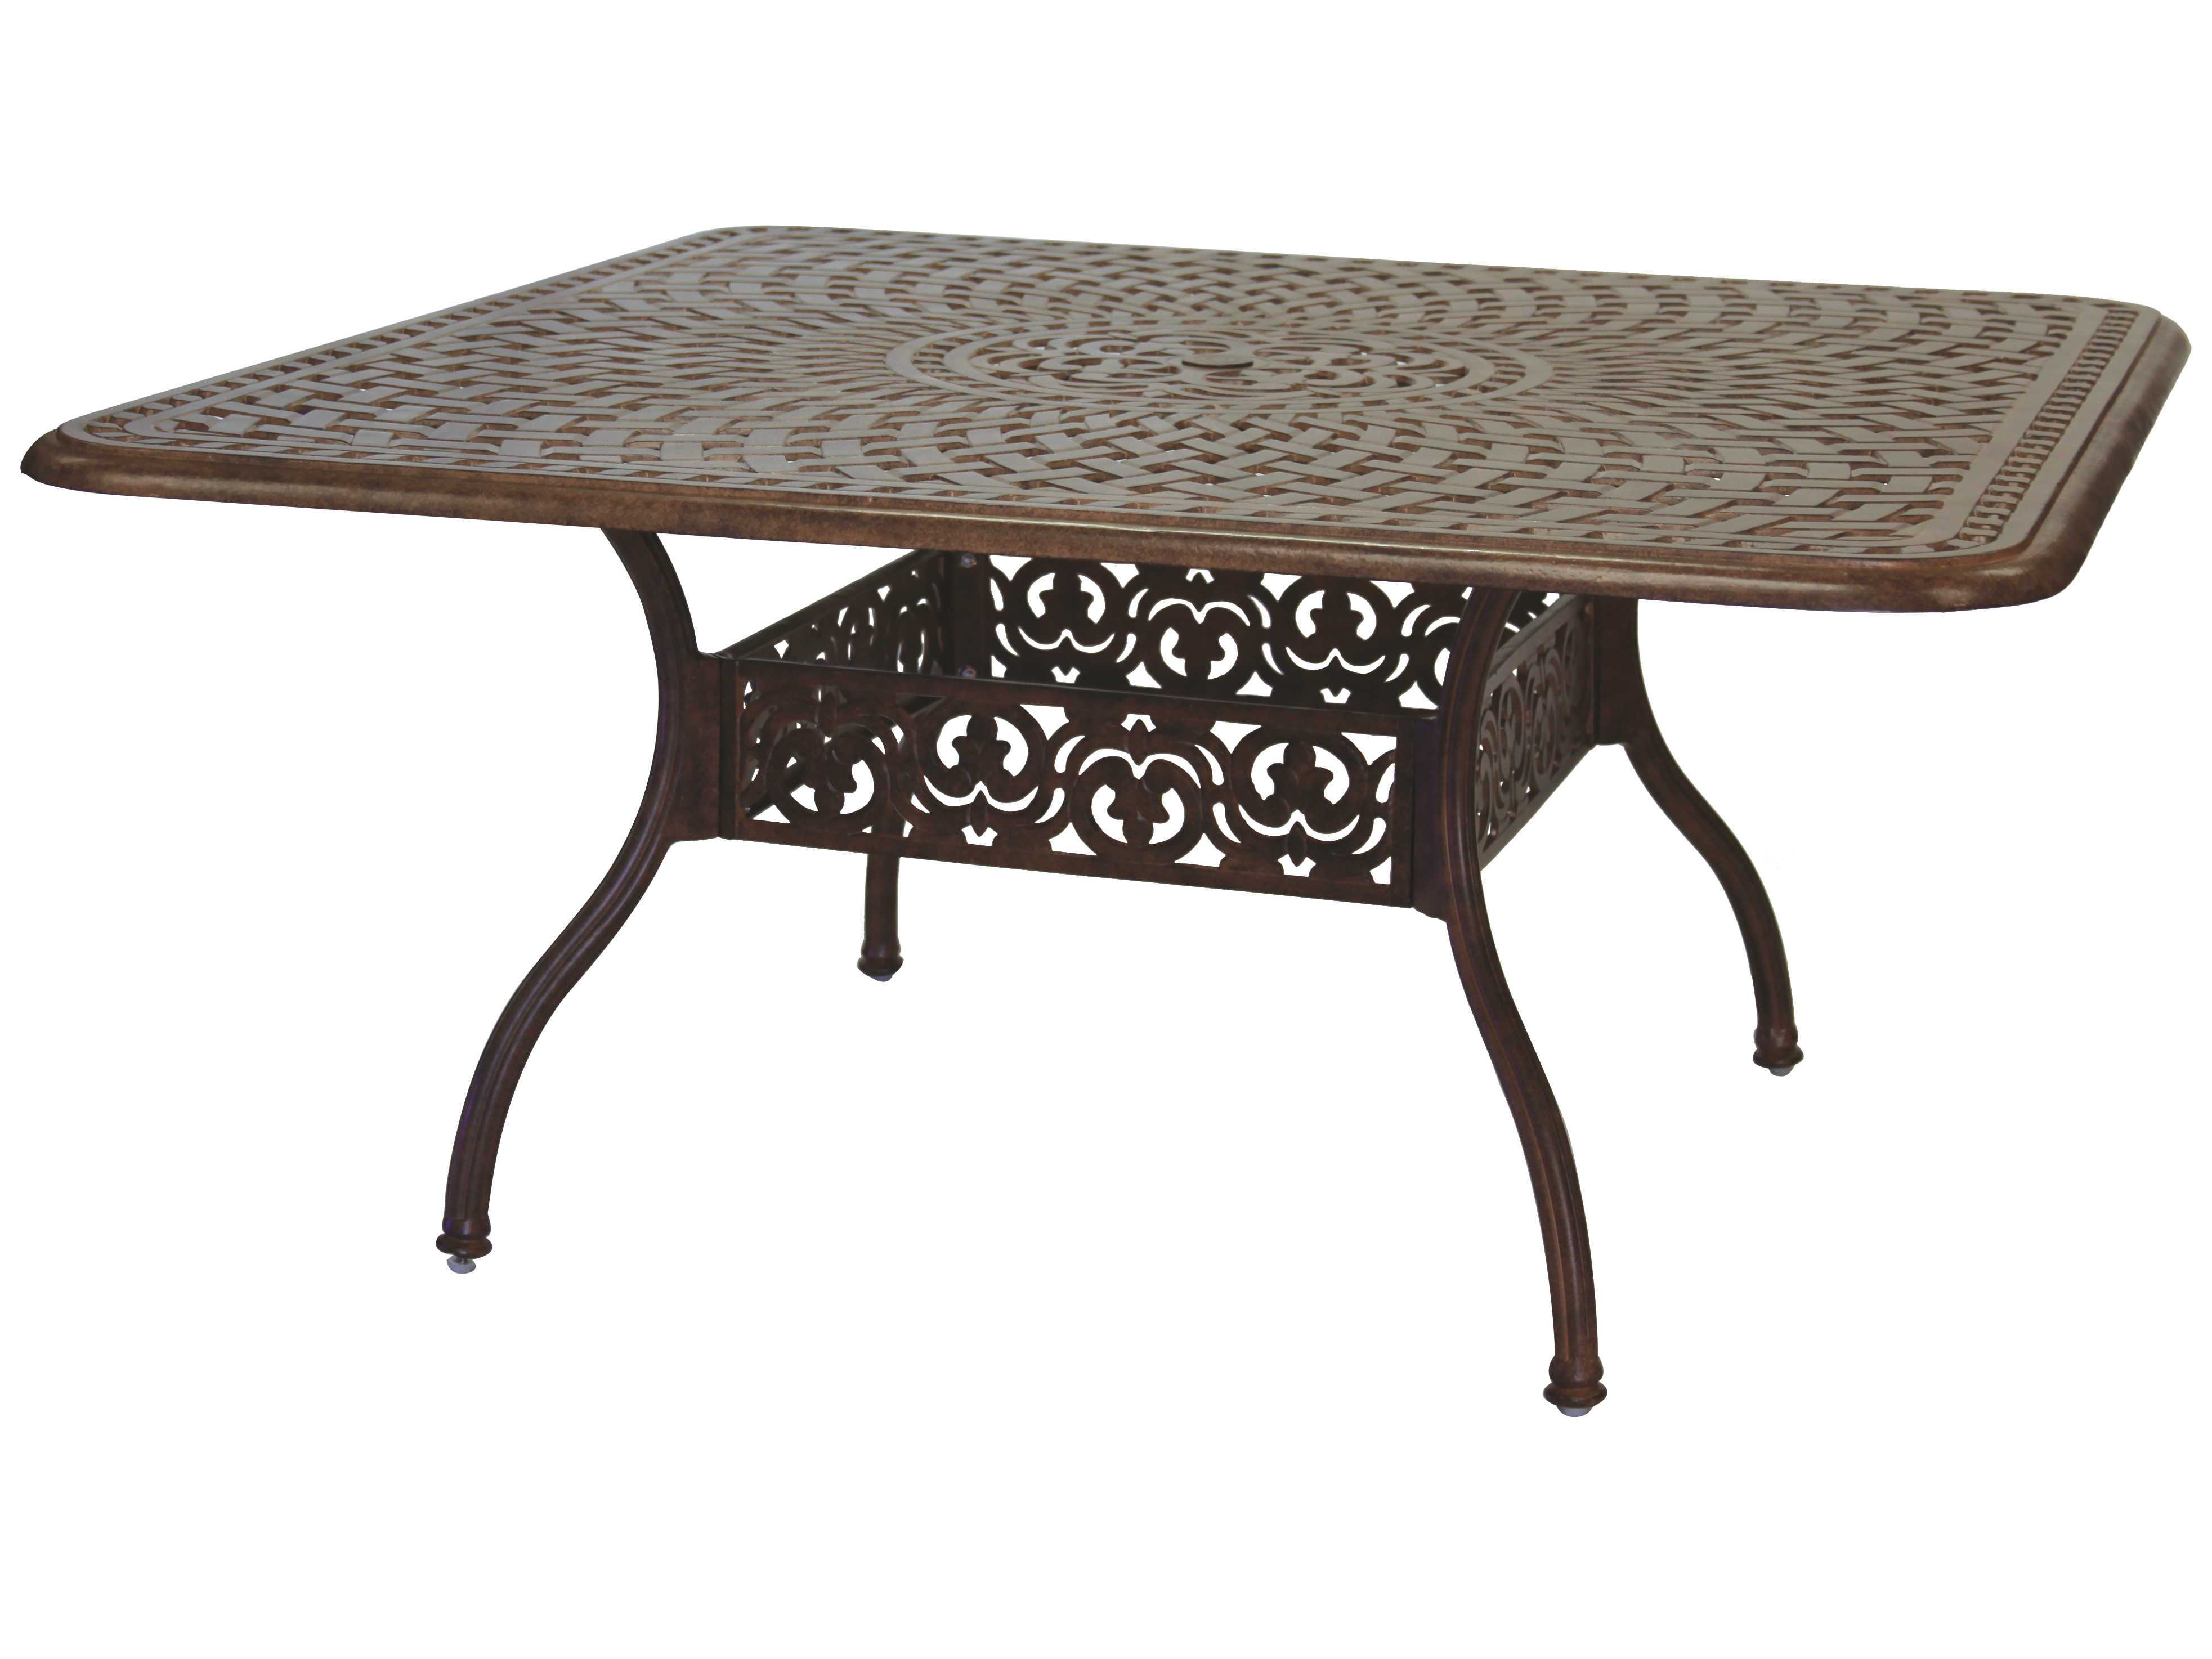 Remarkable Darlee Outdoor Living Series 60 Cast Aluminum 60 Square Dining Table Interior Design Ideas Clesiryabchikinfo